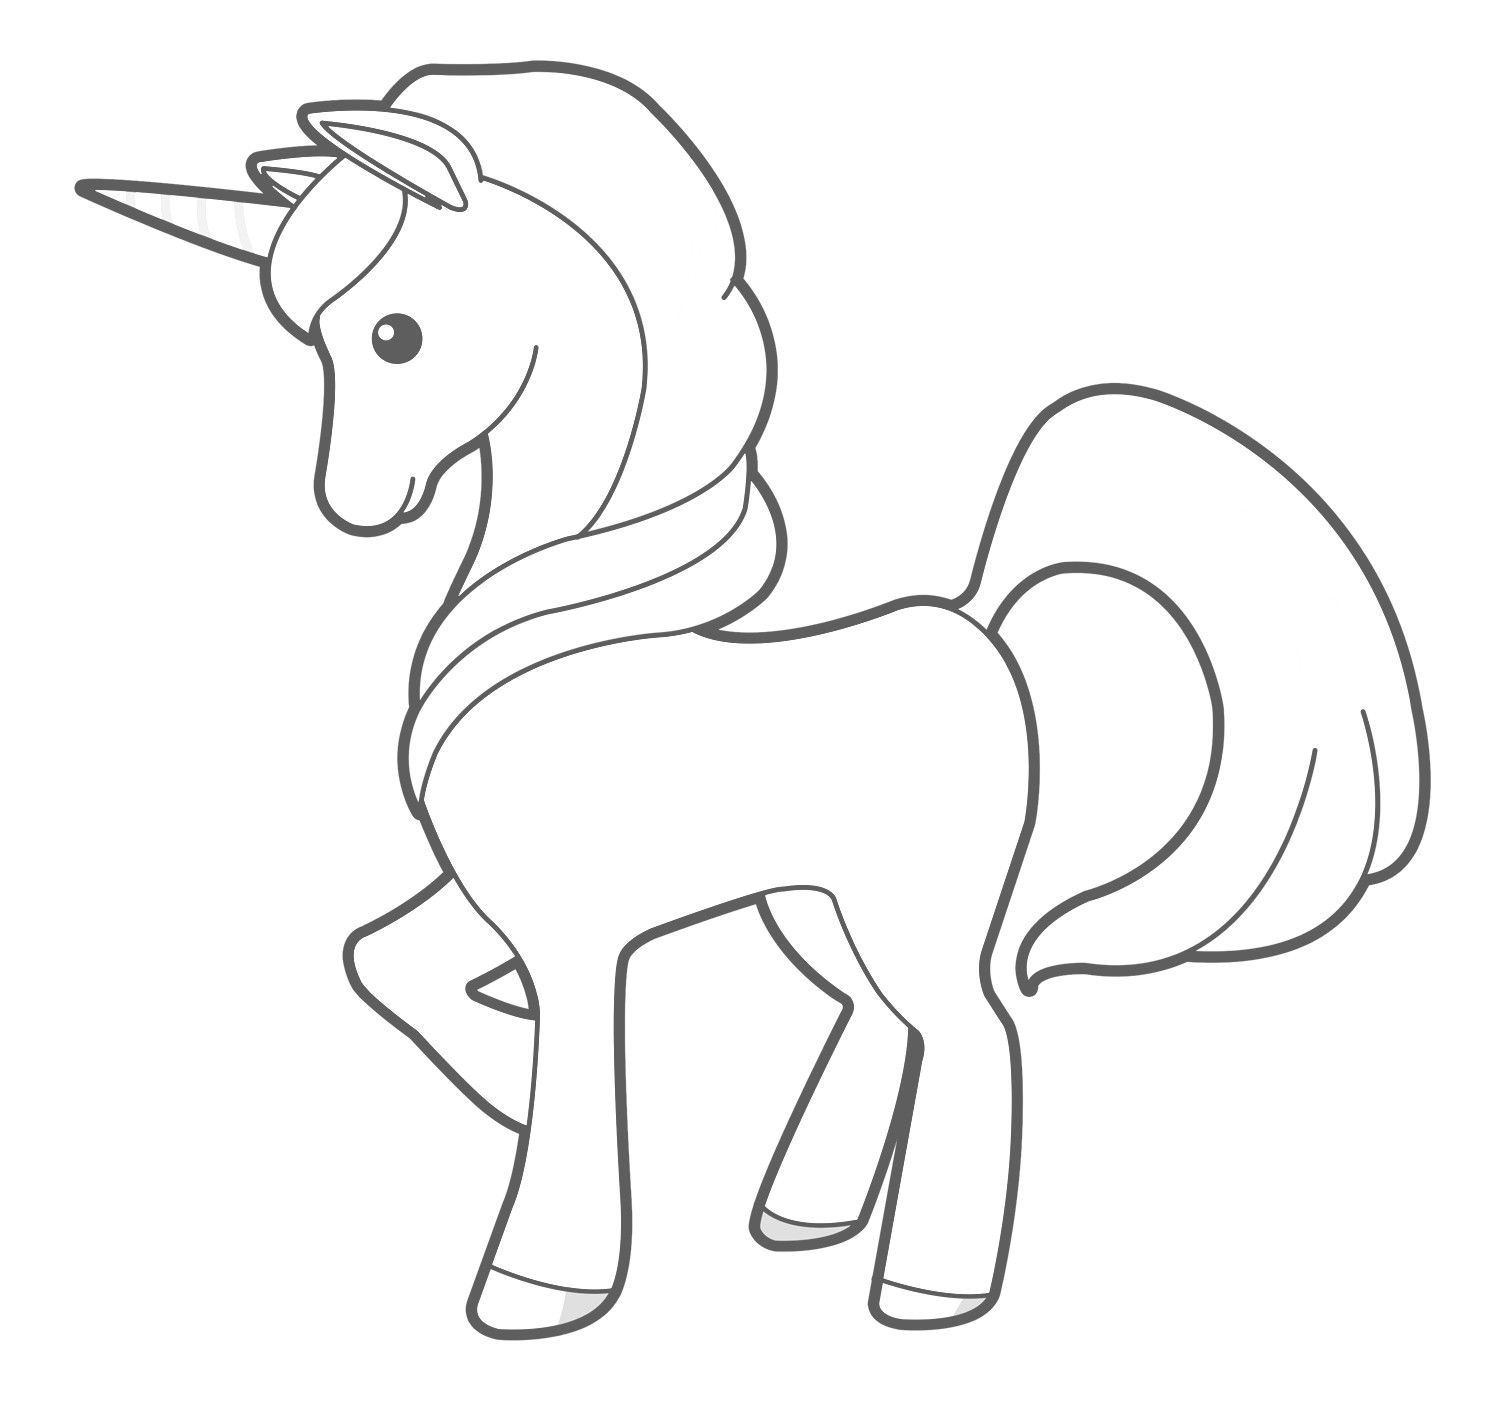 Unicorn Coloring Page Unicorn Coloring Pages Coloring Pages Coloring Books